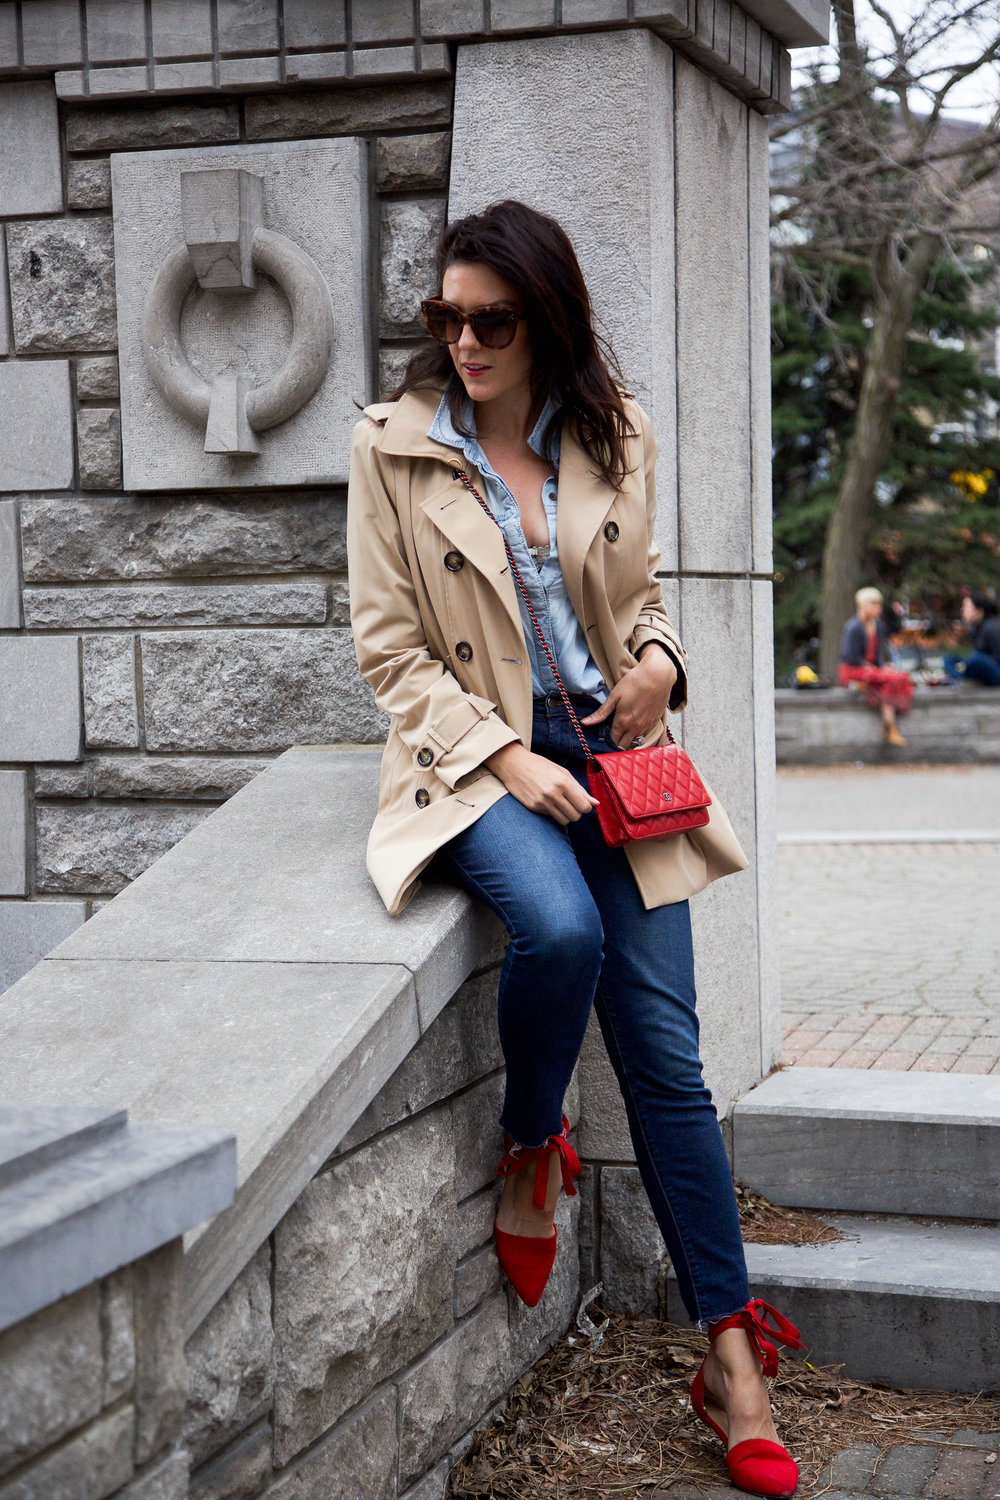 denim-on-denim-outfit-with-trench-coat-and-red-accessories.jpg